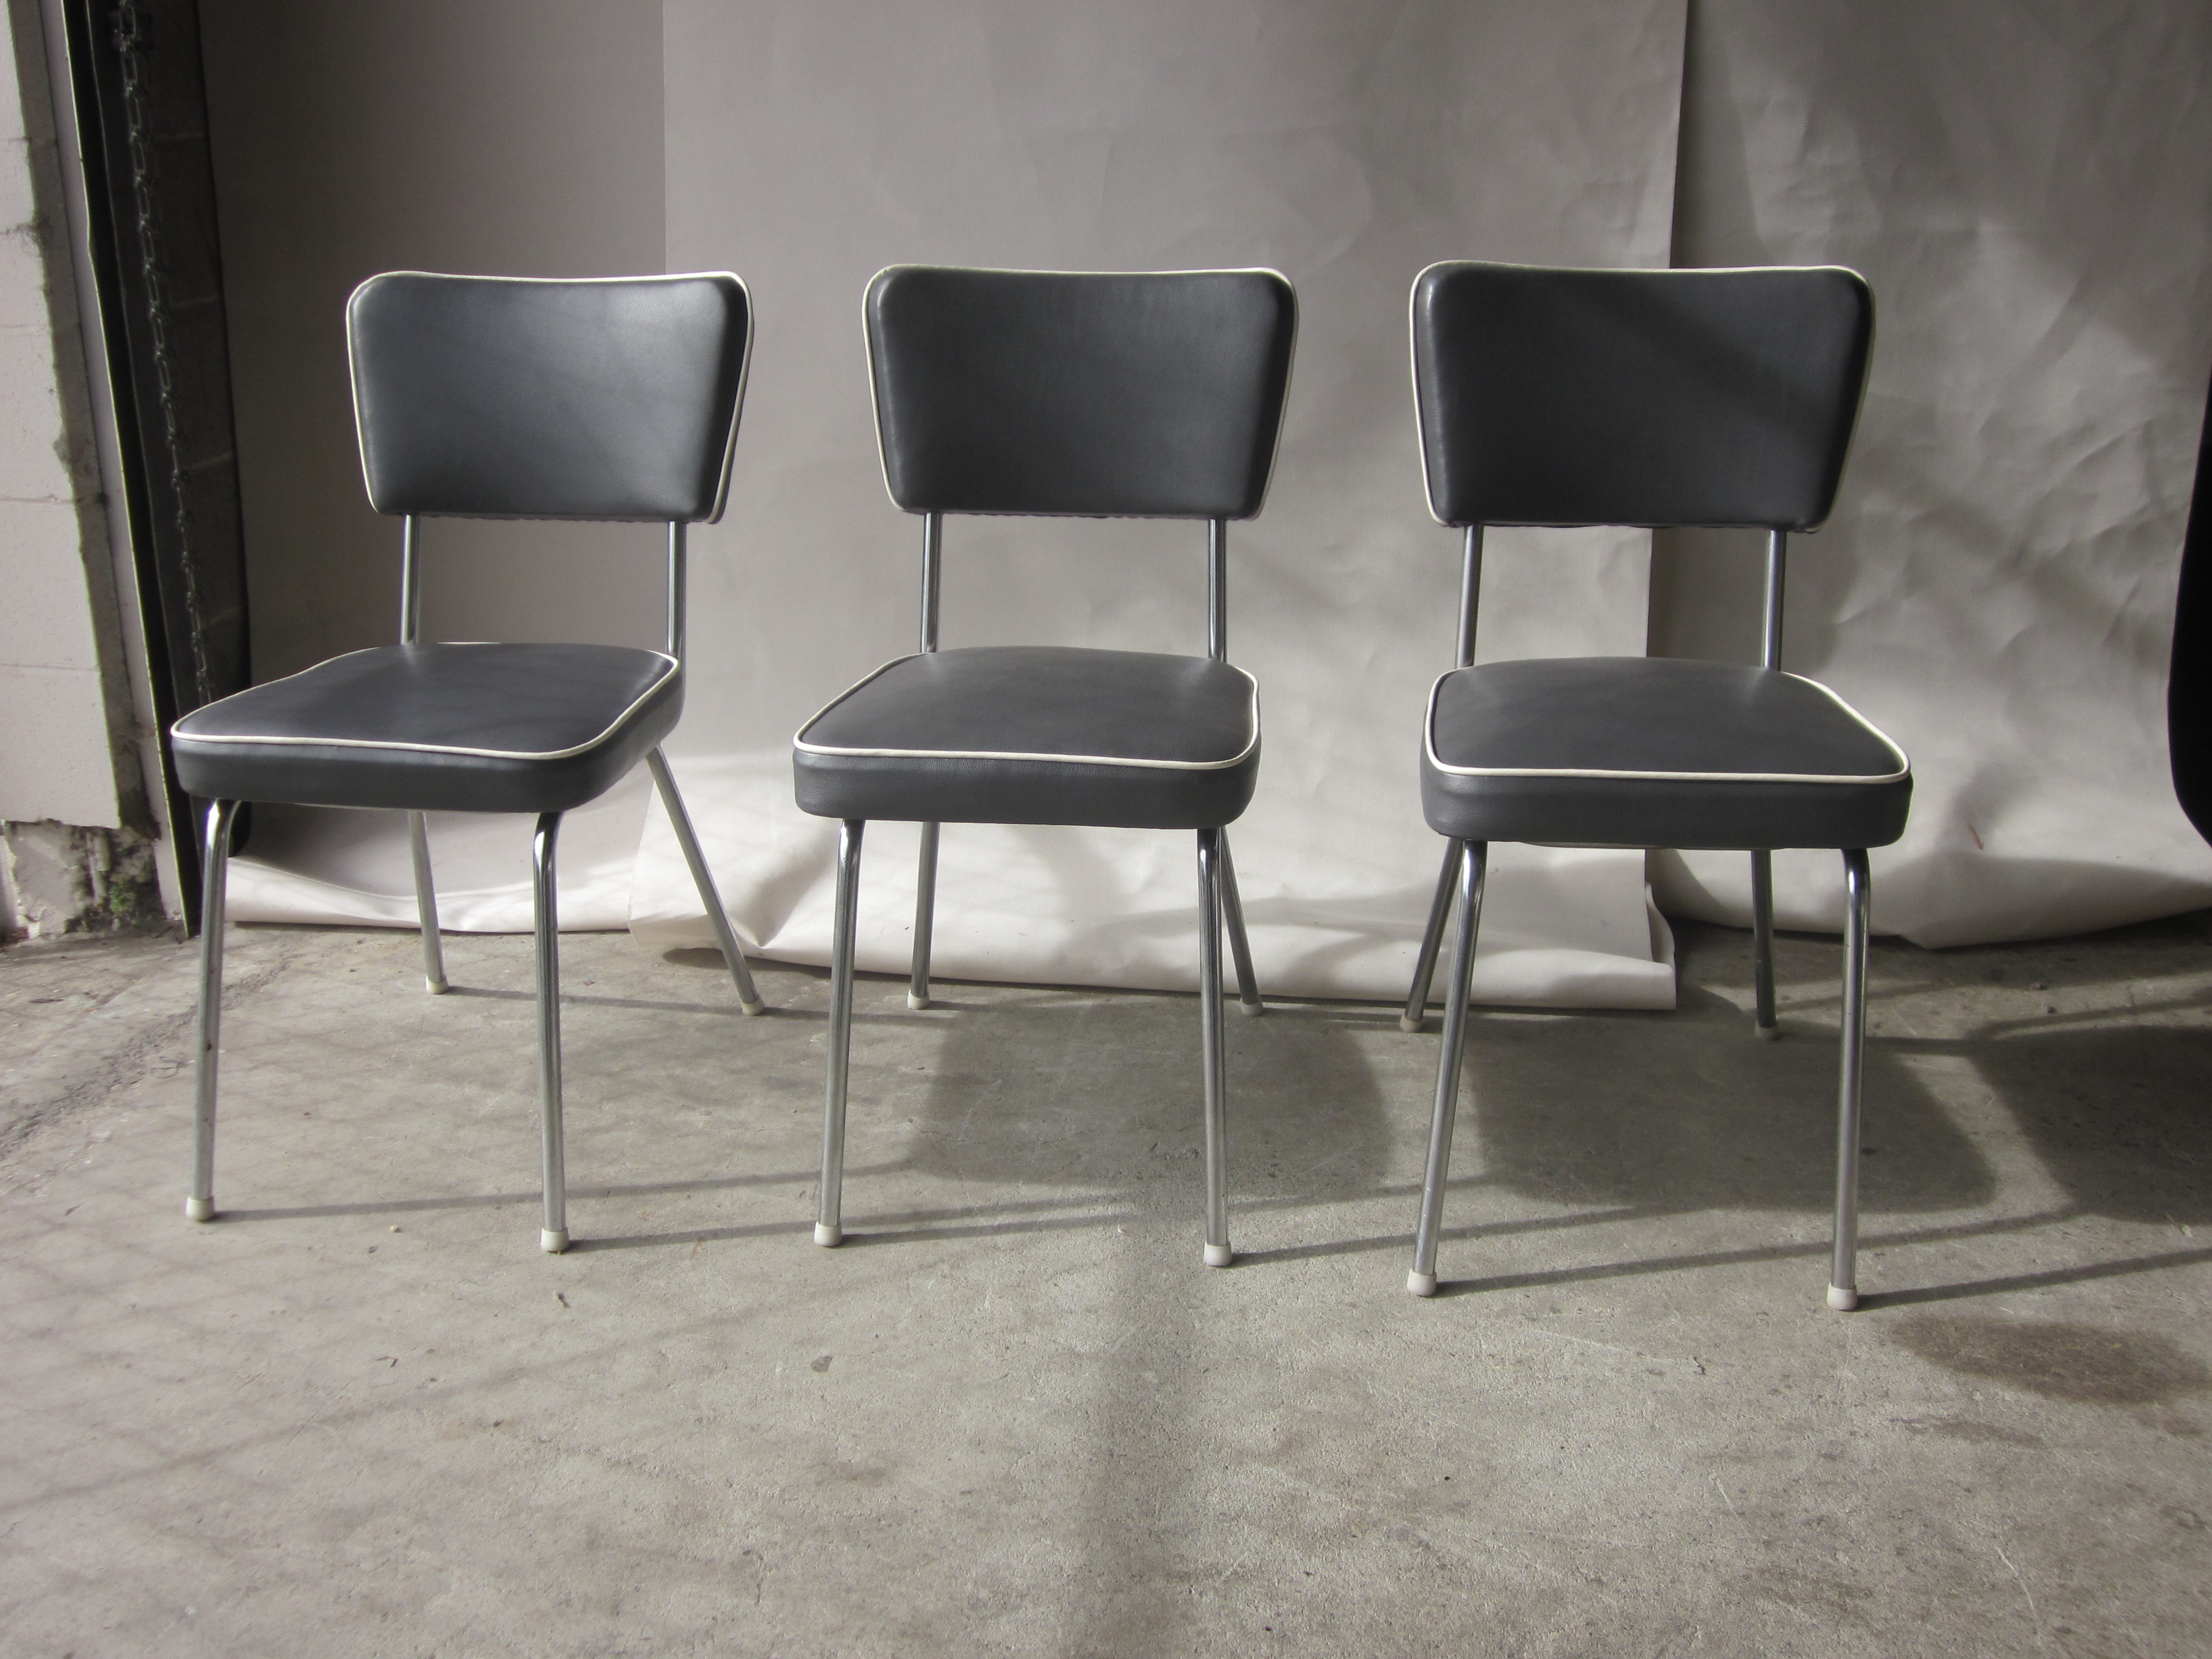 Vintage Gray Faux Leather Dining Chairs Set of 3